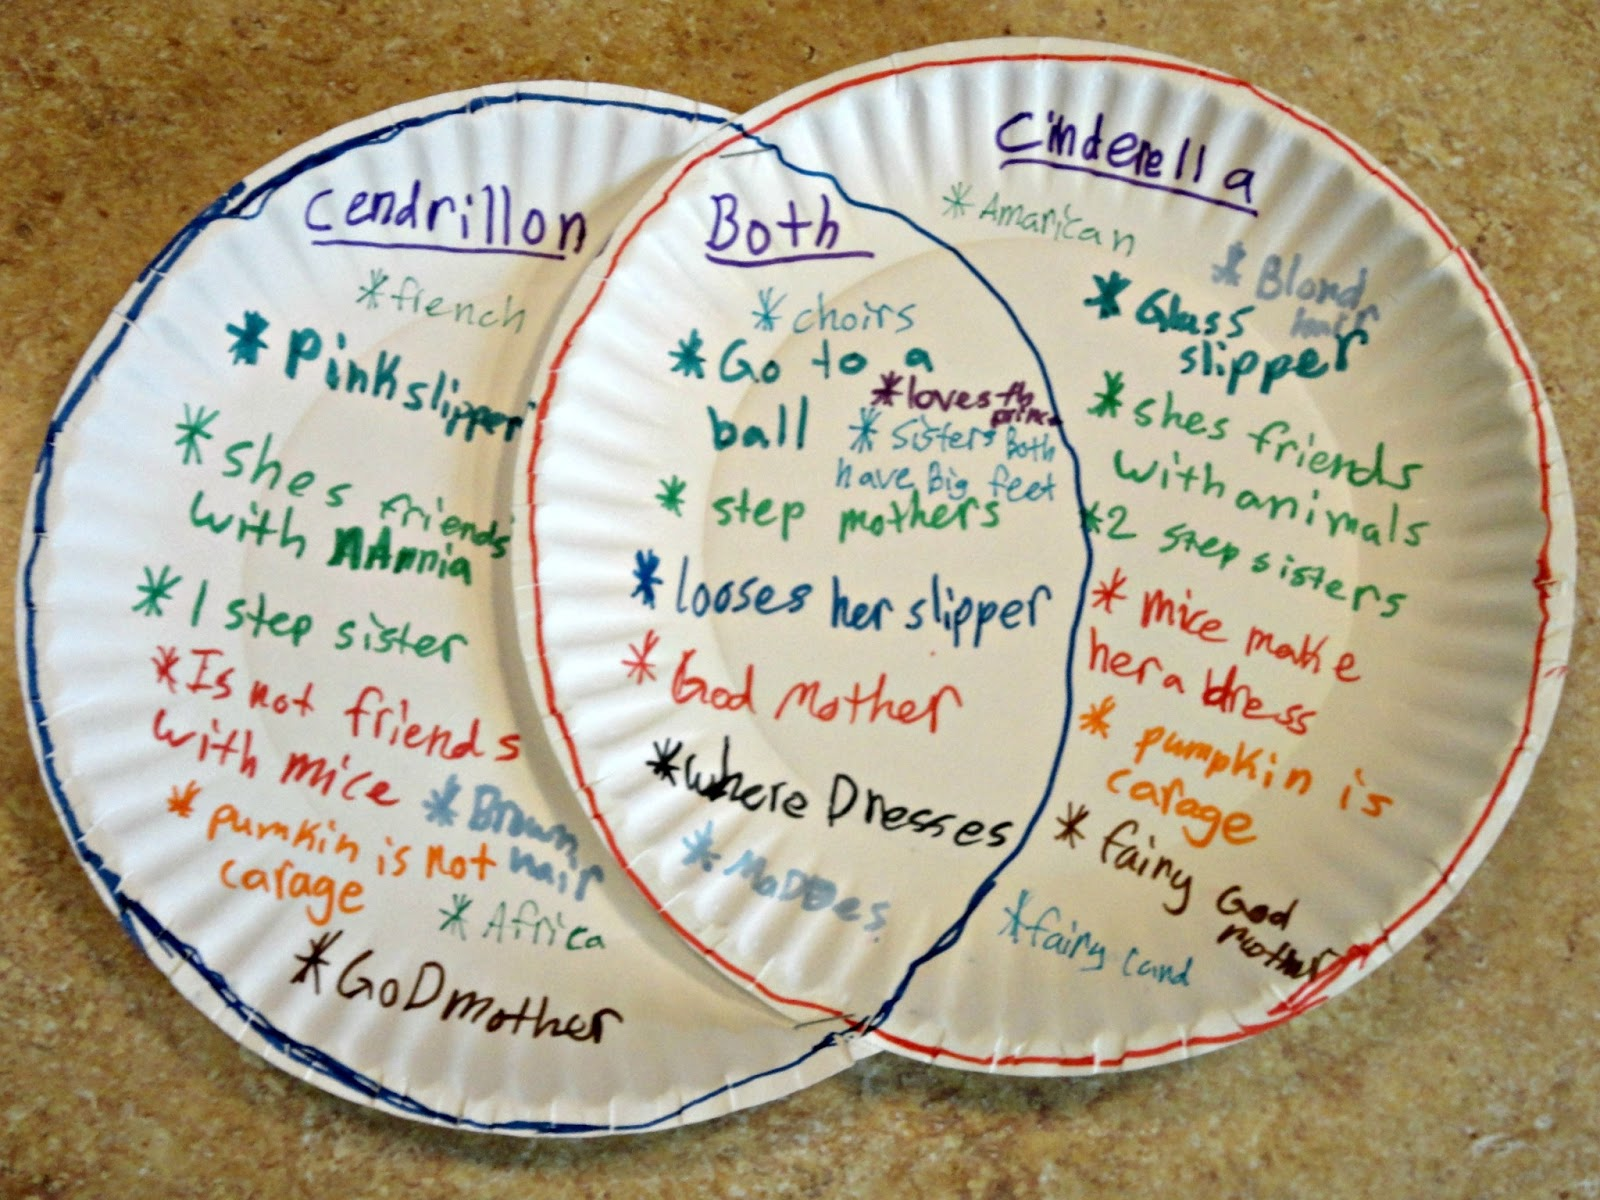 Cendrillon Venn Diagram Human Head And Neck Muscle Labeled Influence Invest Inspire The Journey Of A Young Teacher Spiced It S Amazing How Much Fun Typical Activity Such As Comparing Contrasting Can Be When You Put Little Creativity Into